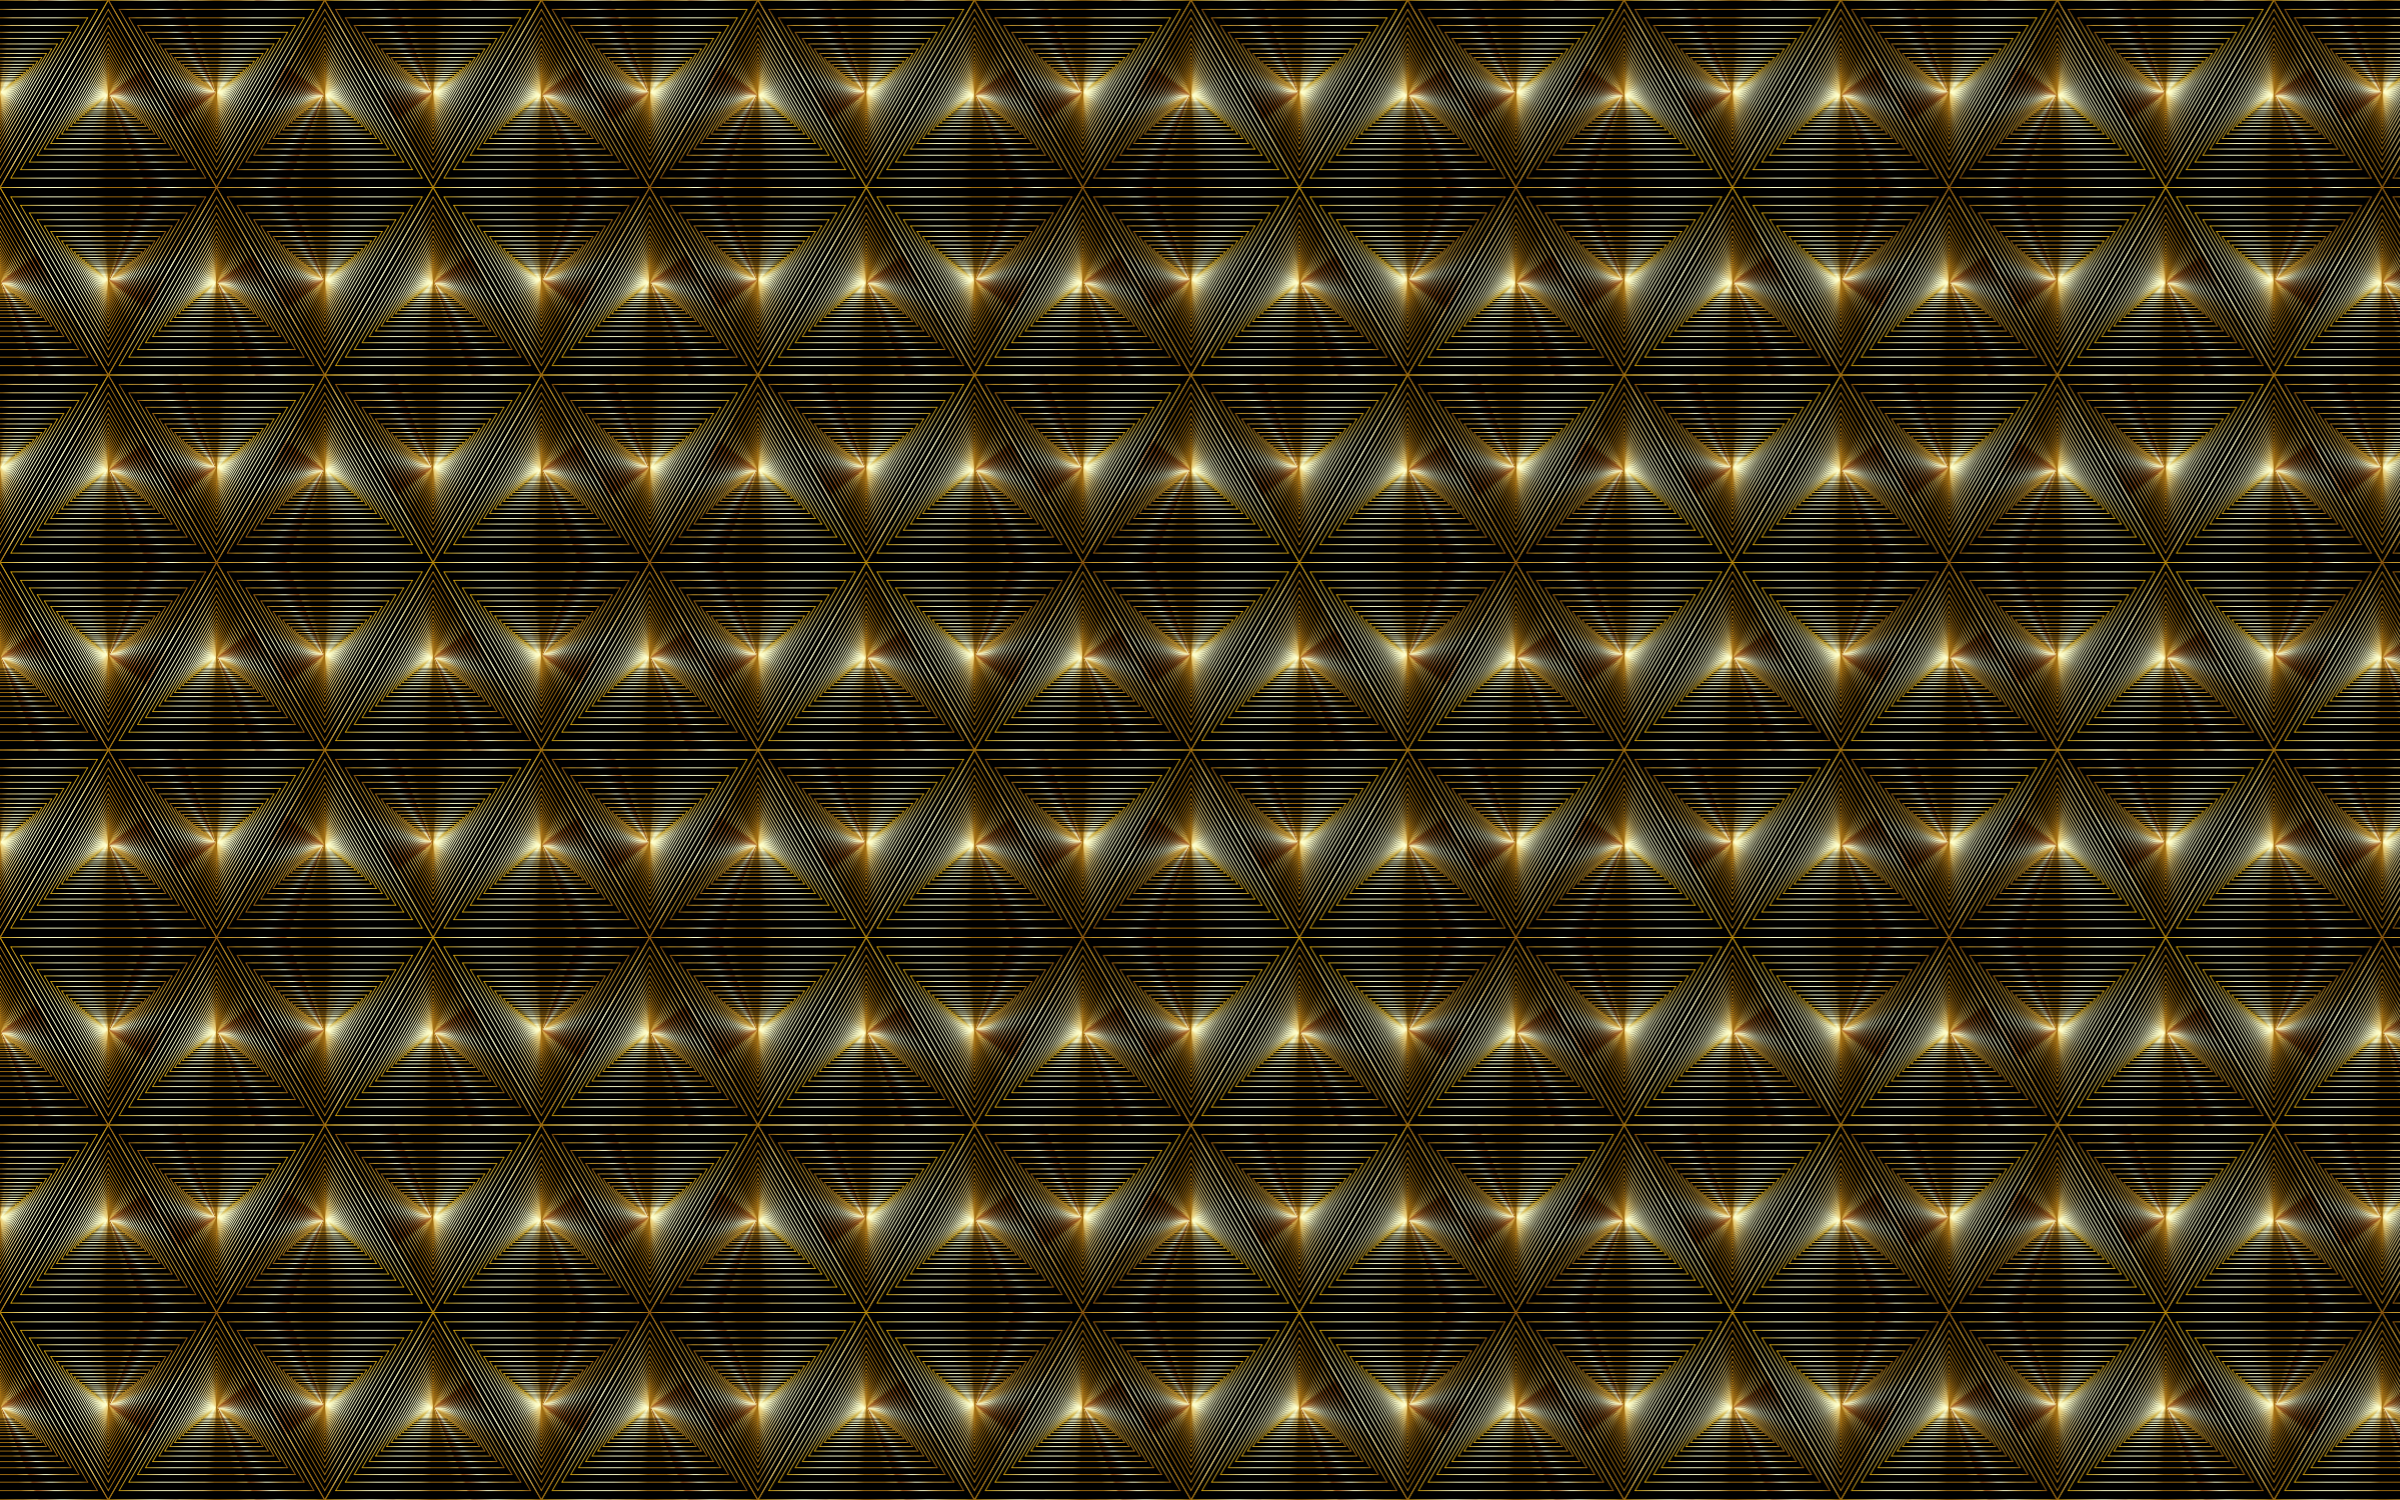 Gold Triangular Seamless Pattern by GDJ